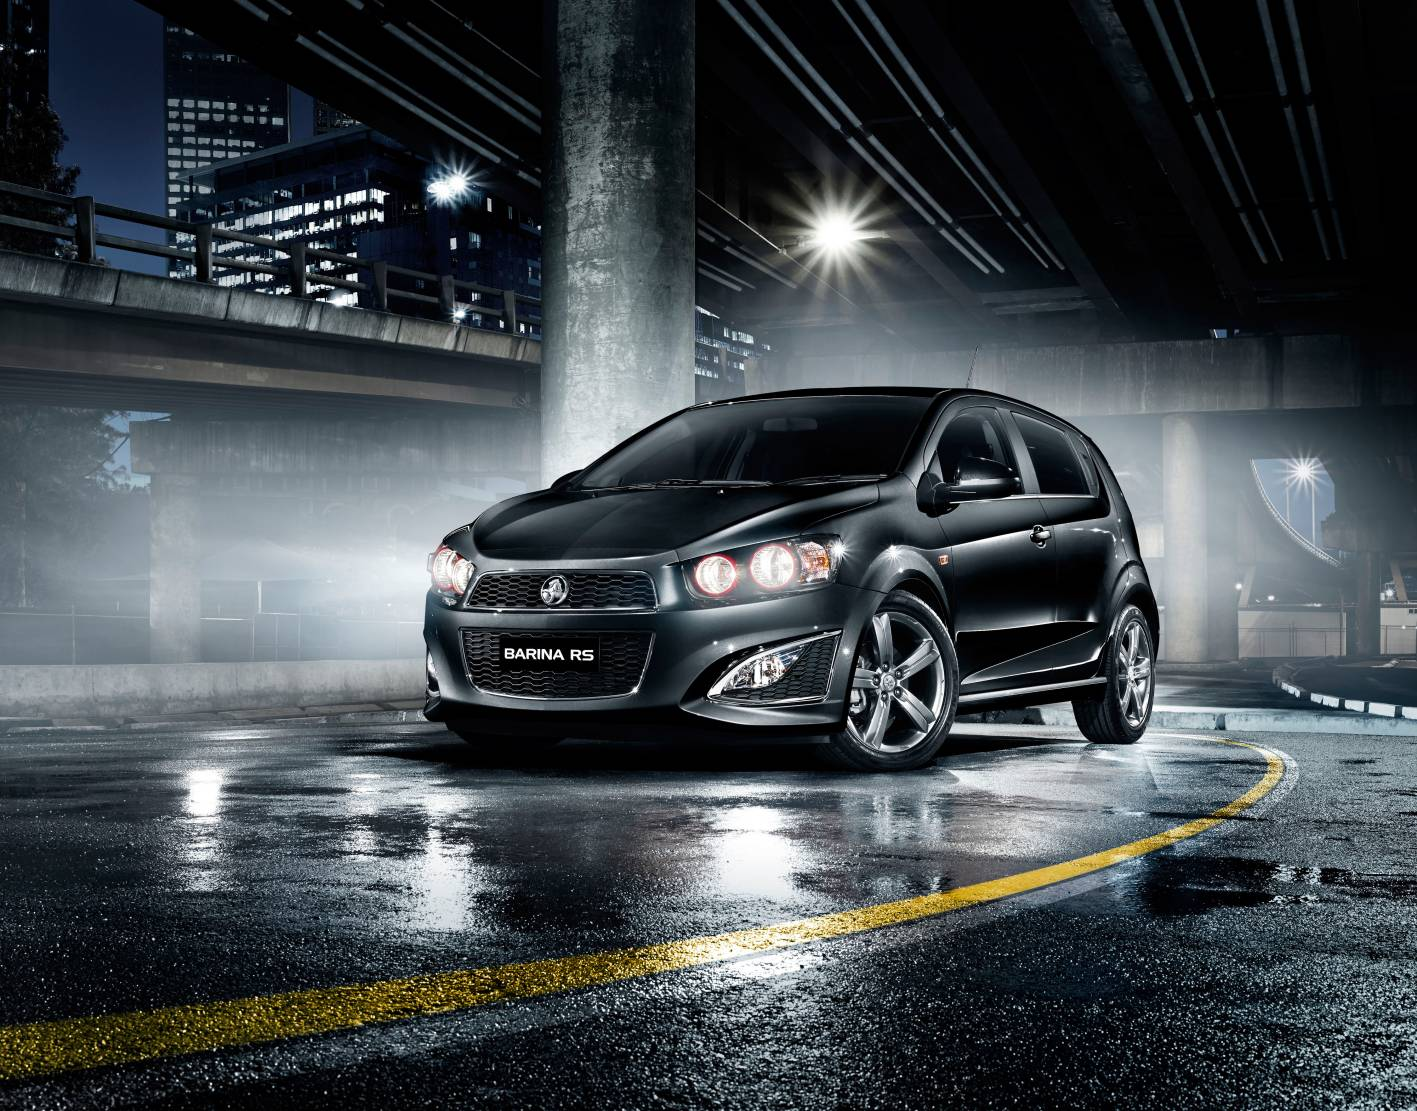 Review 2013 Holden Barina Rs First Drive Carshowroom